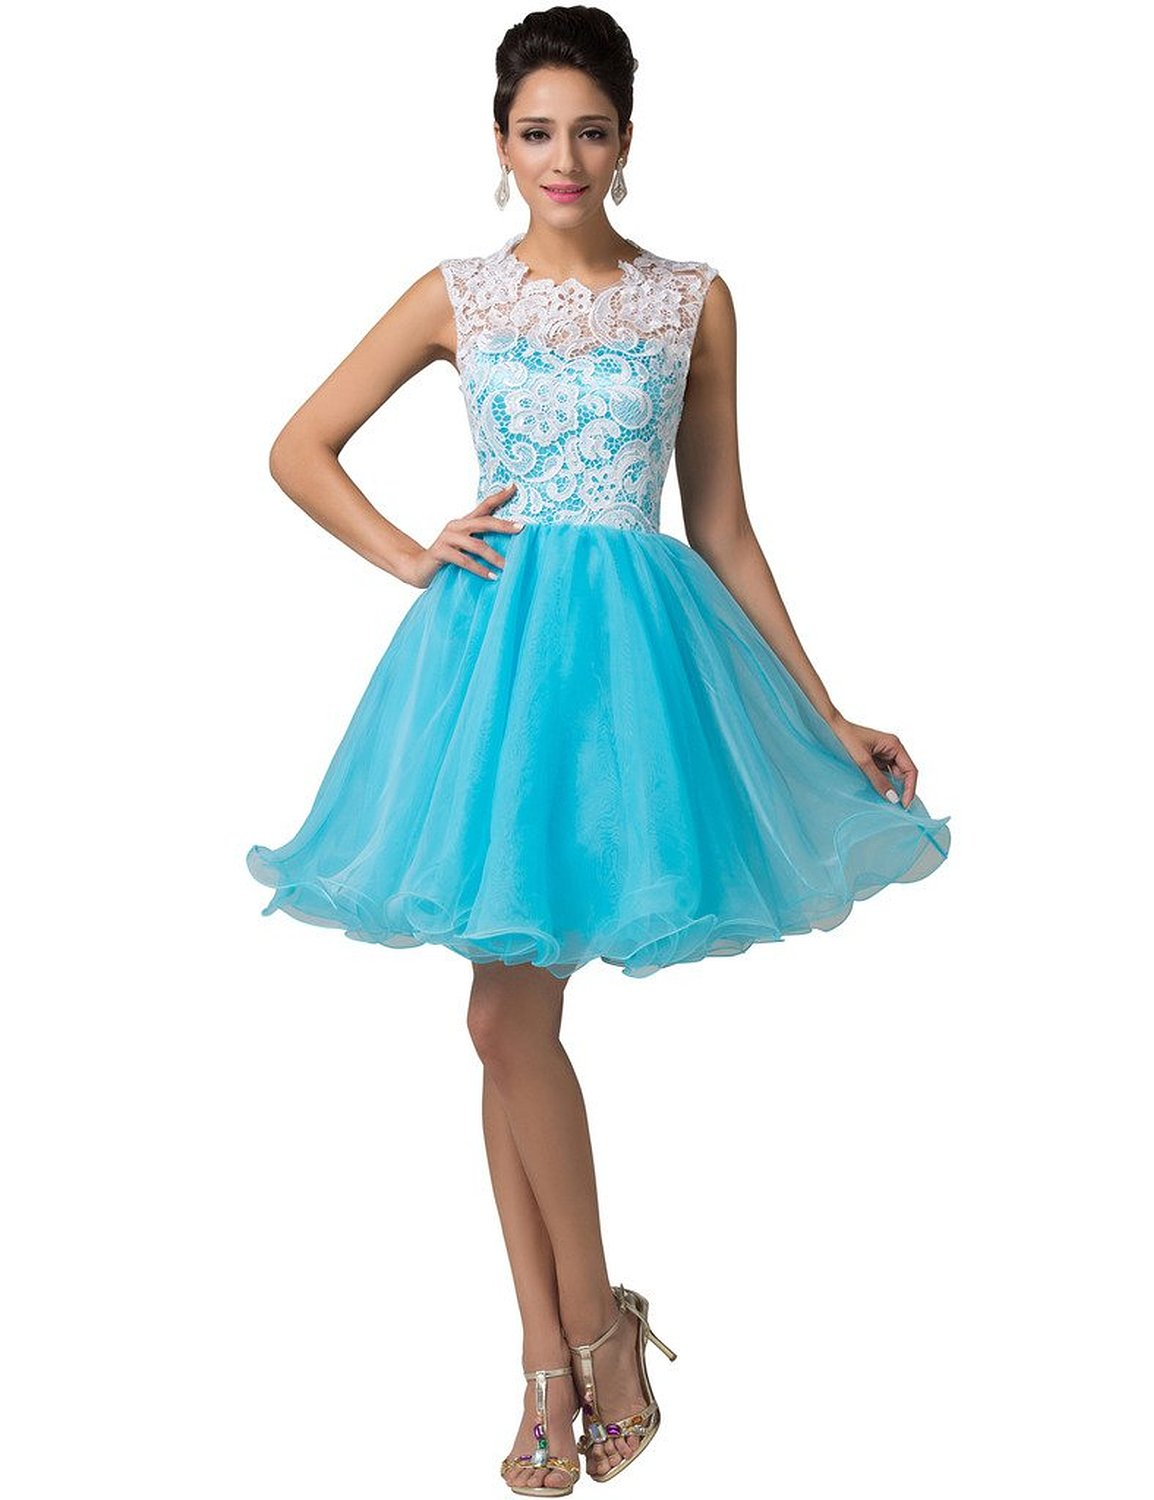 Grace Karin Sleeveless Lace Tulle Ball Cocktail Dress at Amazon Women's Clothing store: